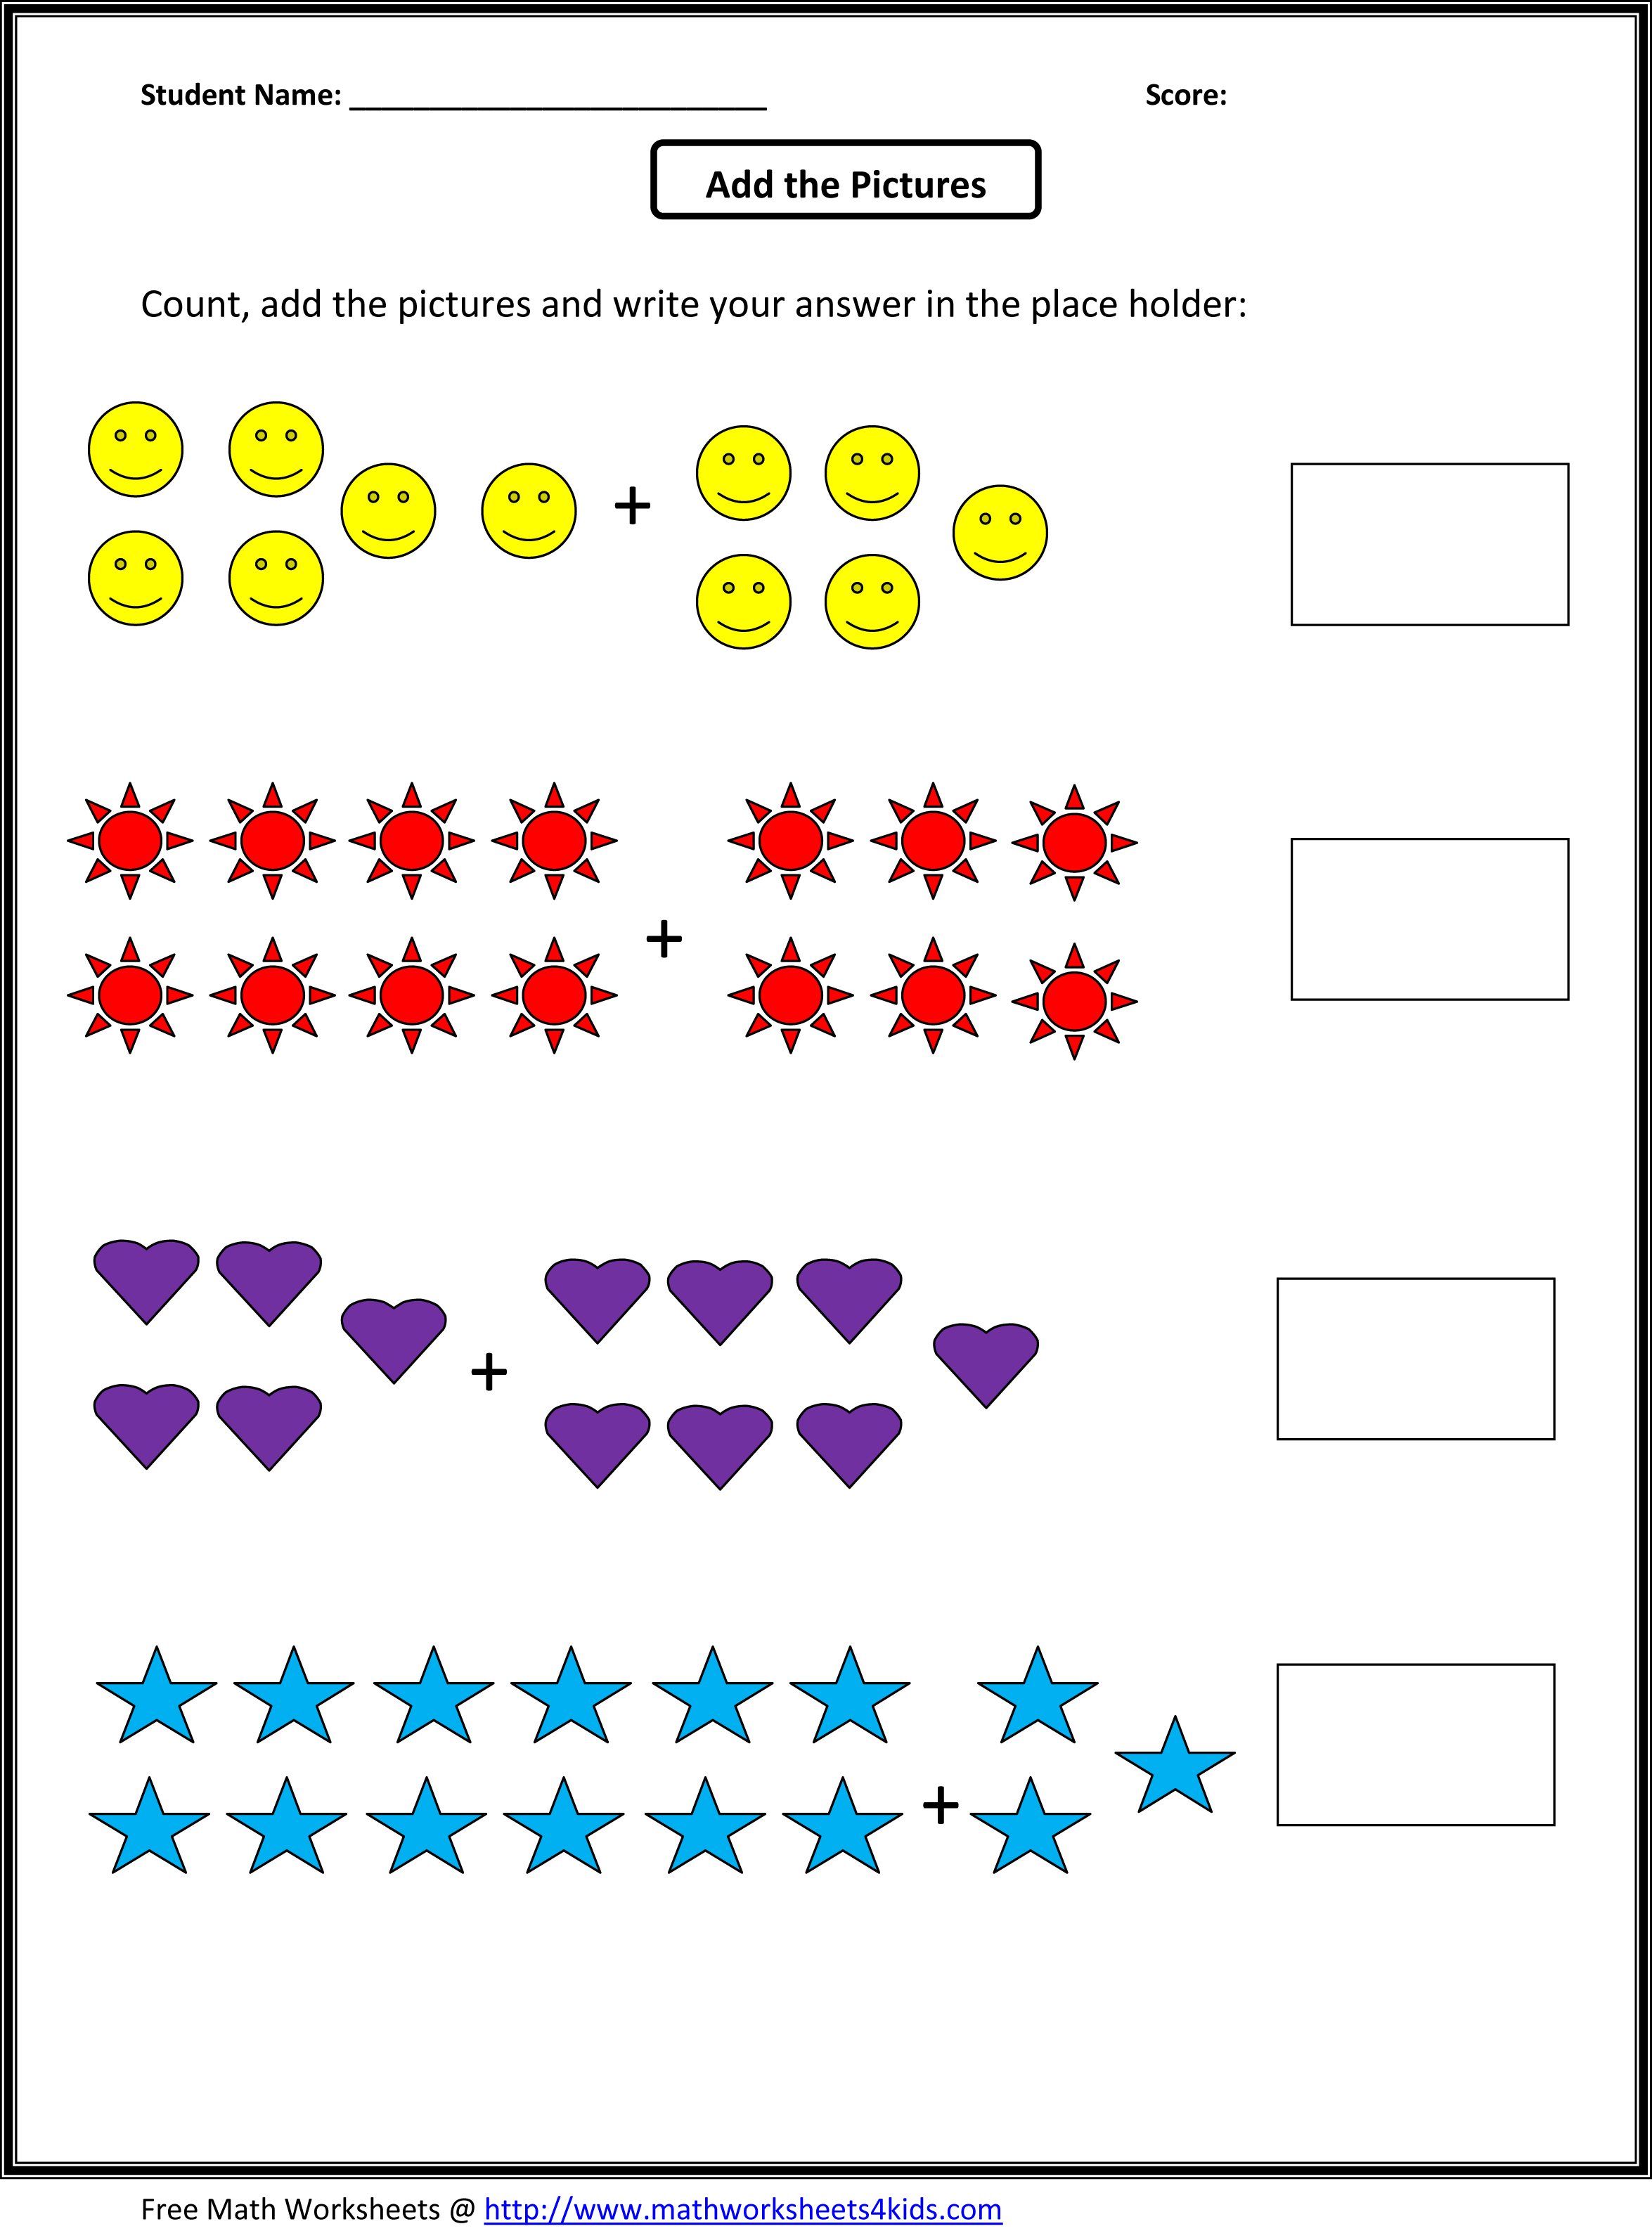 Weirdmailus  Prepossessing Grade  Maths Worksheet  Reocurent With Hot Math Worksheets For St Grade Free  Reocurent With Amazing Audit Worksheet Template Also Consonant And Vowel Worksheets In Addition Past Tense Verbs Worksheets For Rd Grade And Free Printable Letter E Worksheets As Well As Nd Amendment Worksheet Additionally Tracer Worksheets From Reocurentcom With Weirdmailus  Hot Grade  Maths Worksheet  Reocurent With Amazing Math Worksheets For St Grade Free  Reocurent And Prepossessing Audit Worksheet Template Also Consonant And Vowel Worksheets In Addition Past Tense Verbs Worksheets For Rd Grade From Reocurentcom